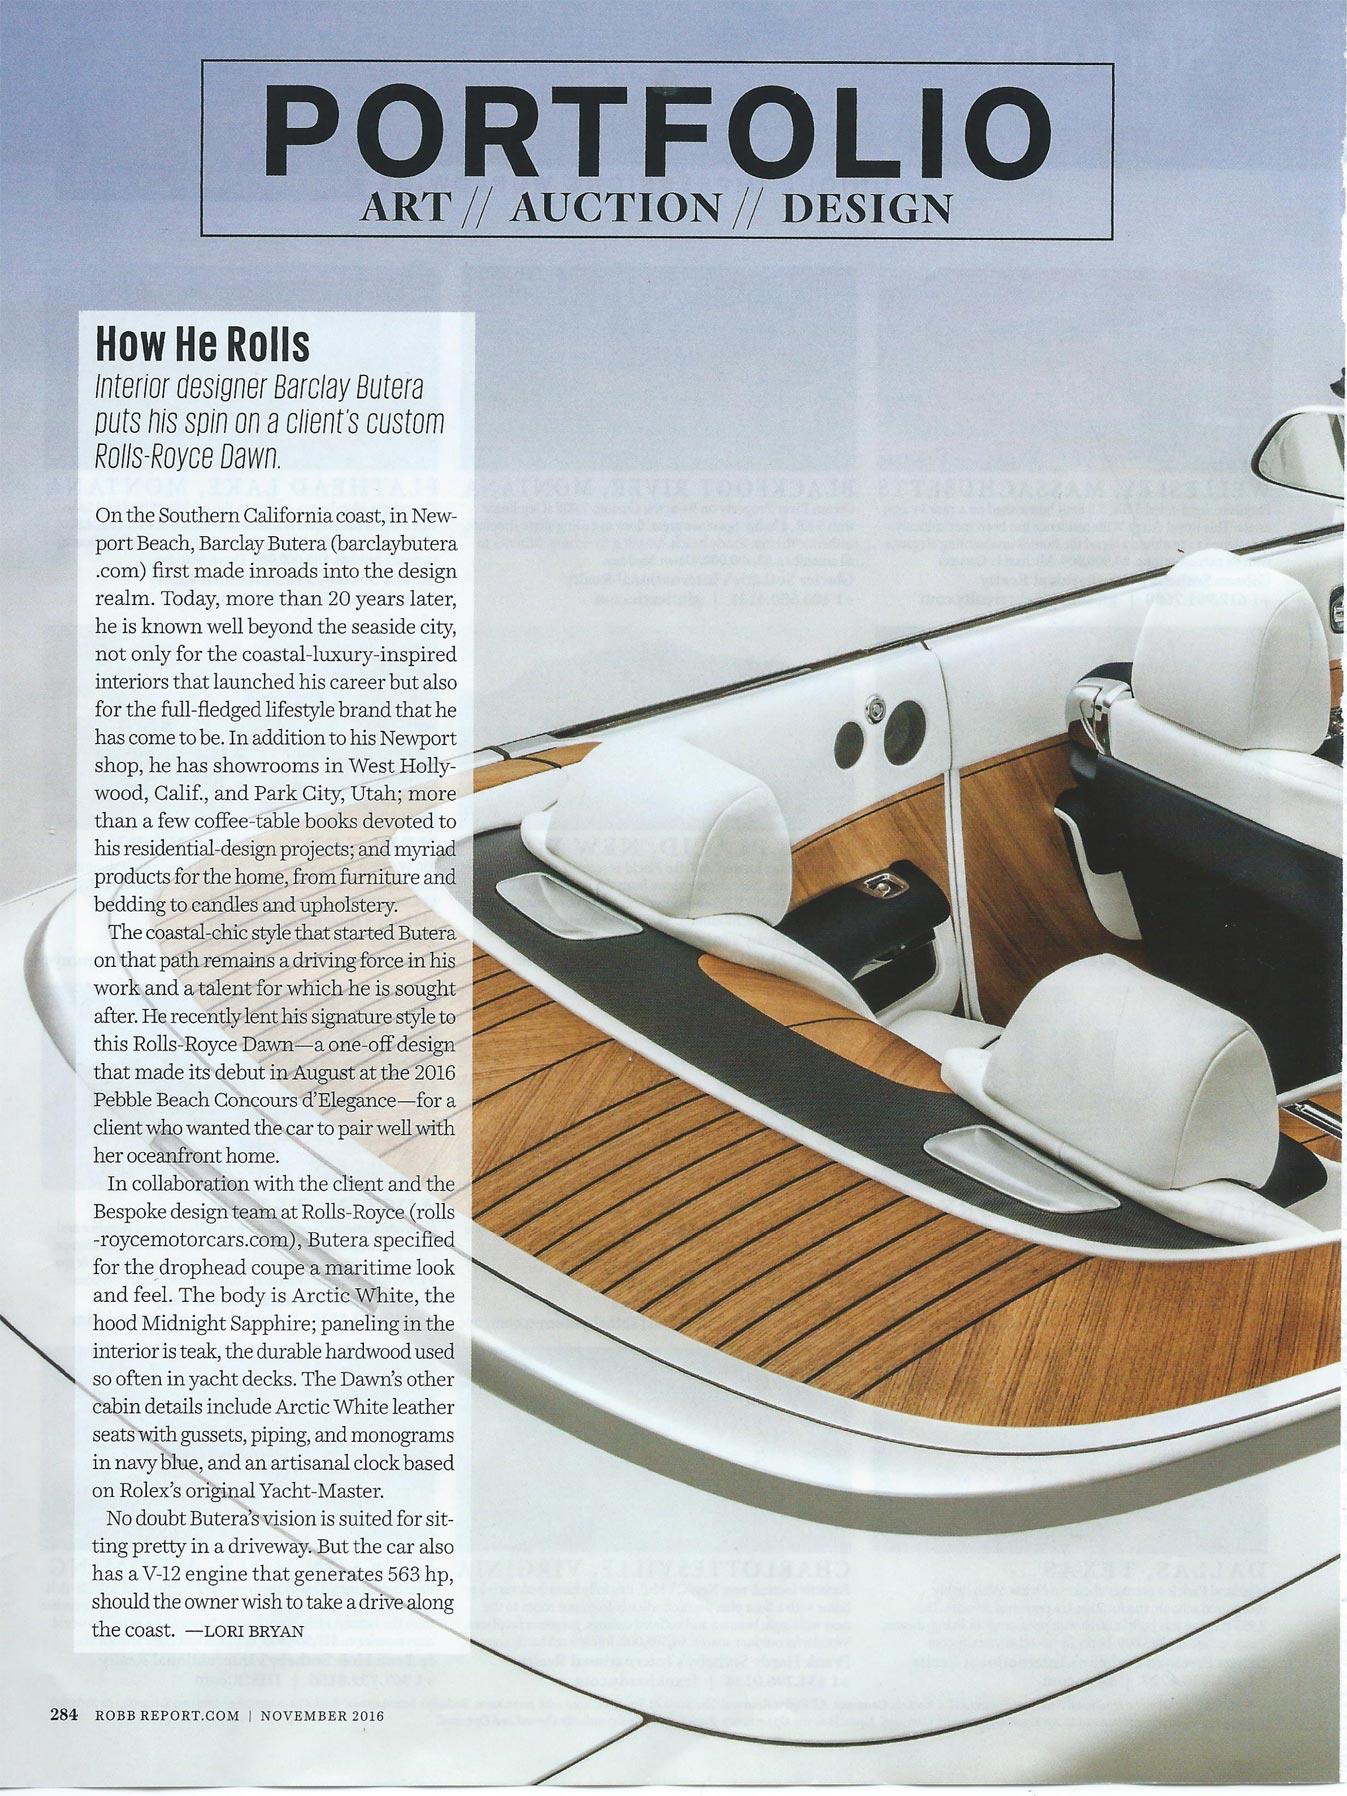 Robb Report, 2 of 3